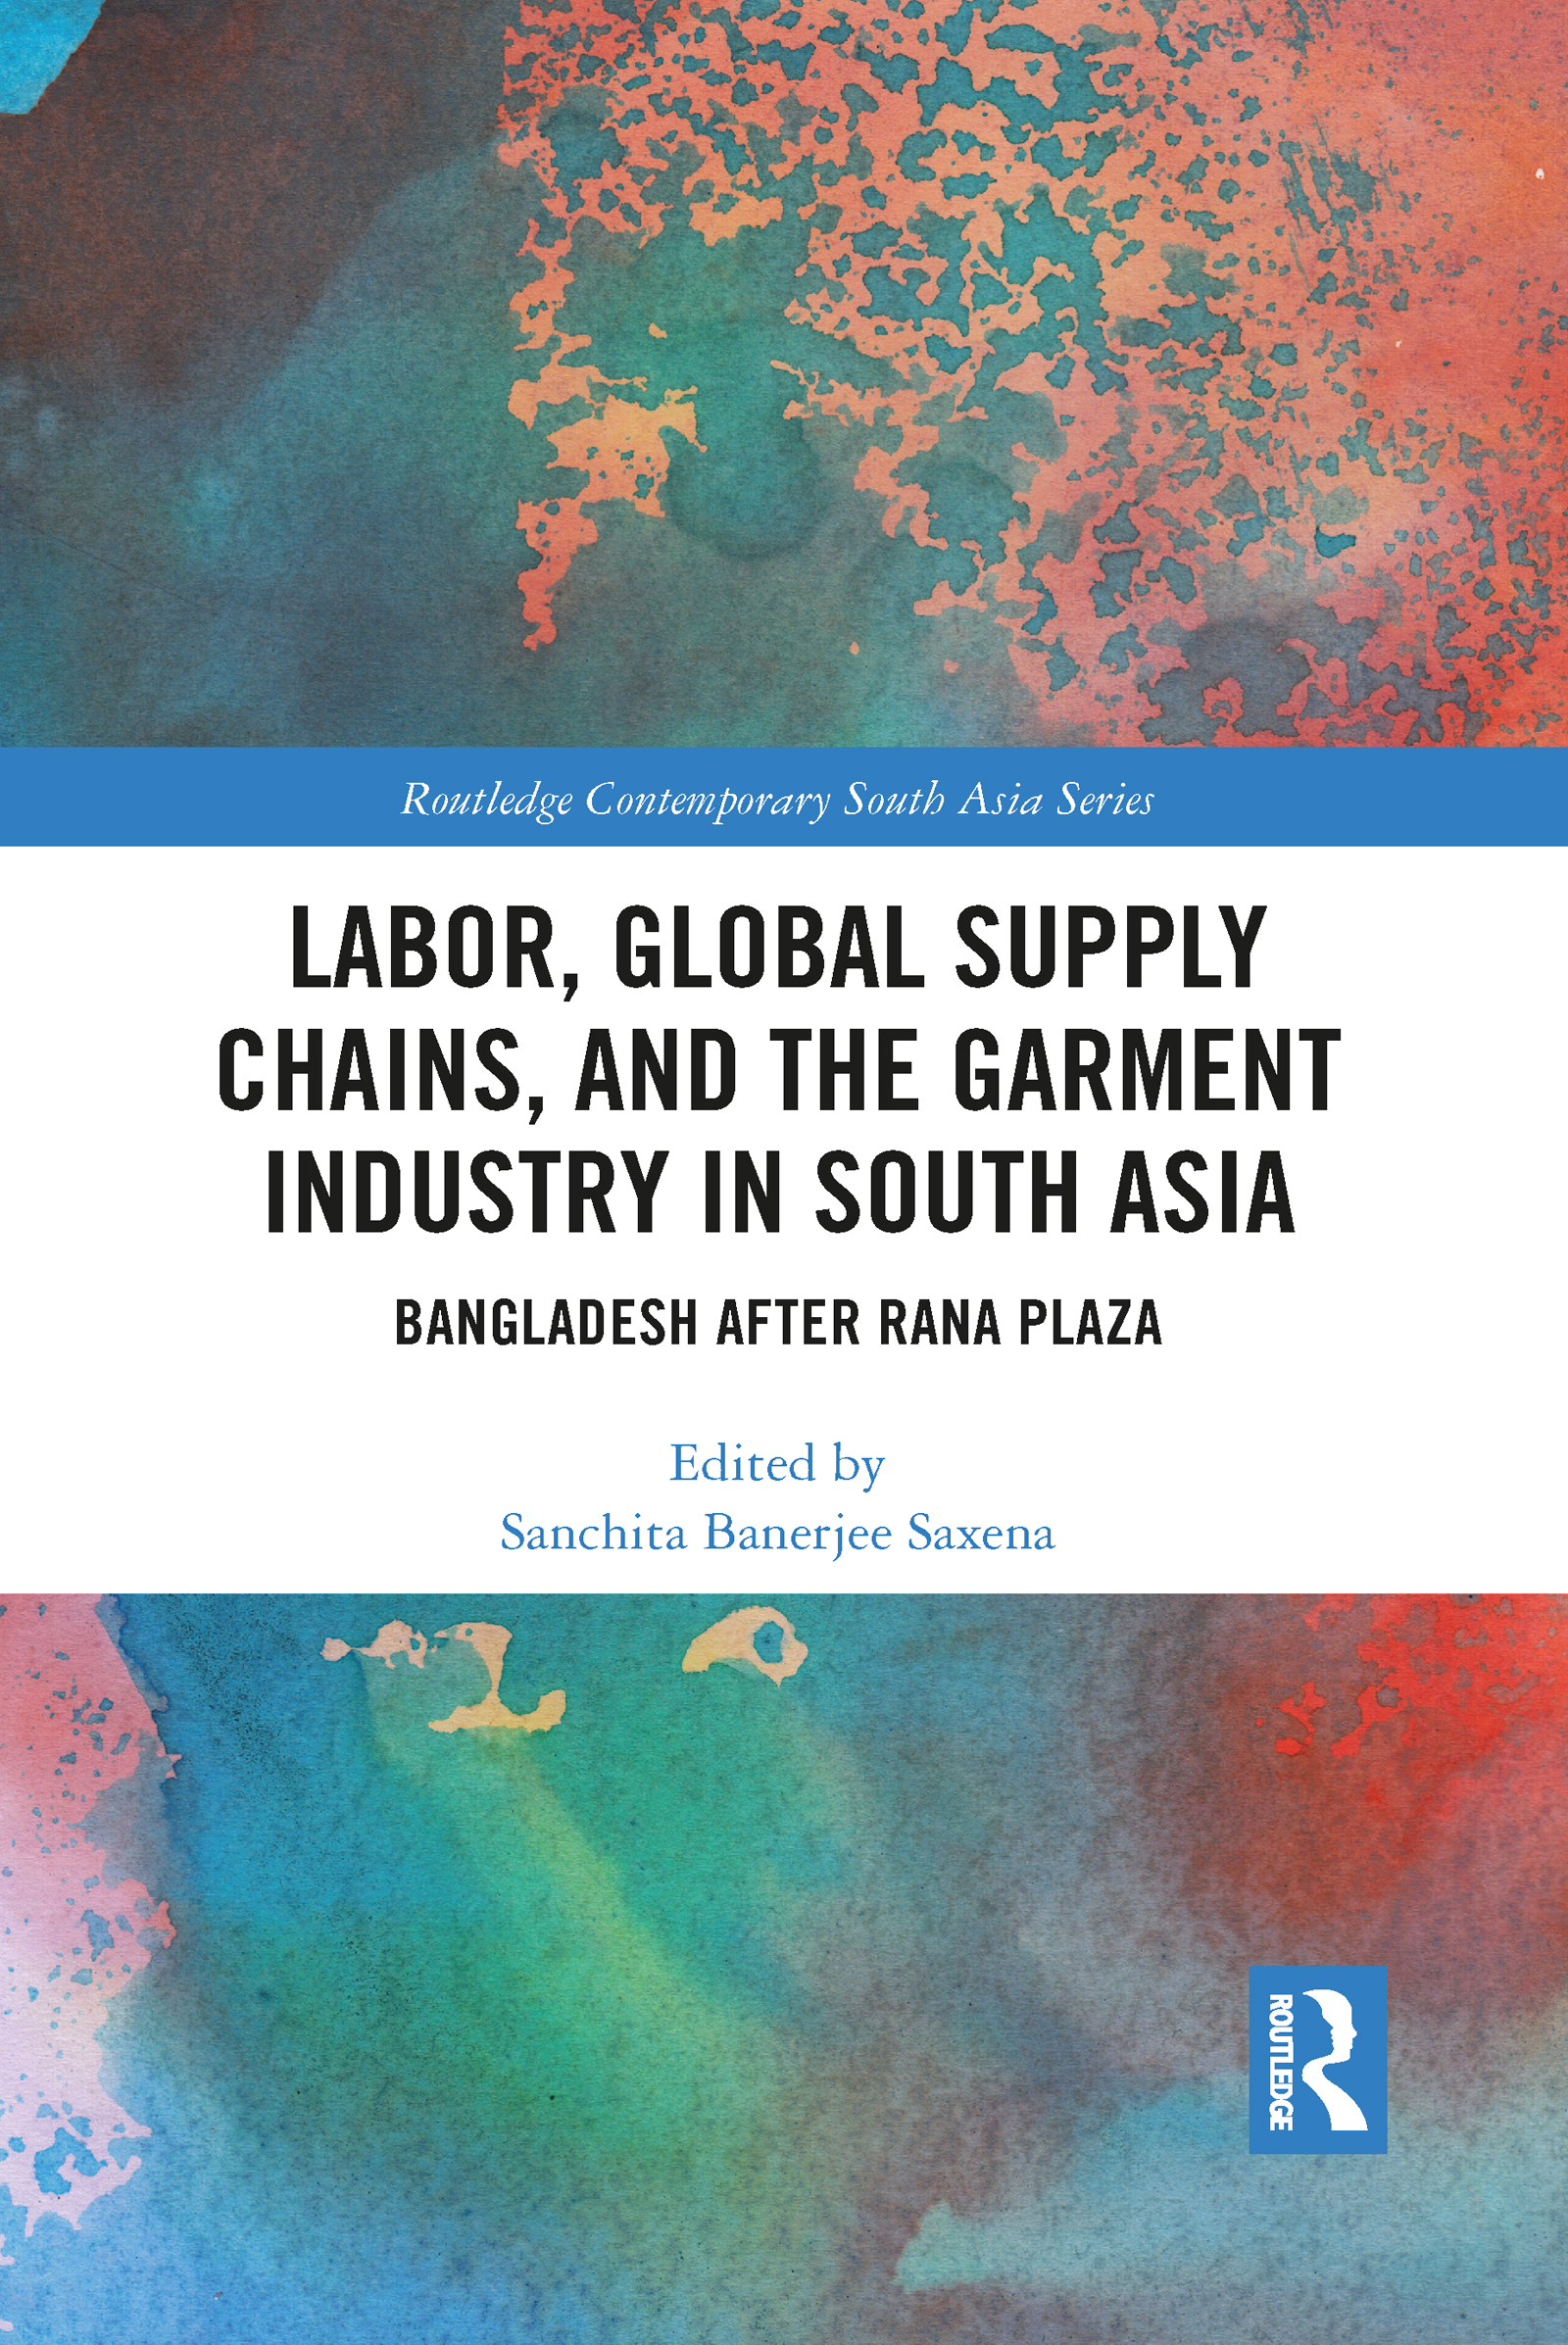 Labor, Global Supply Chains, and the Garment Industry in South Asia